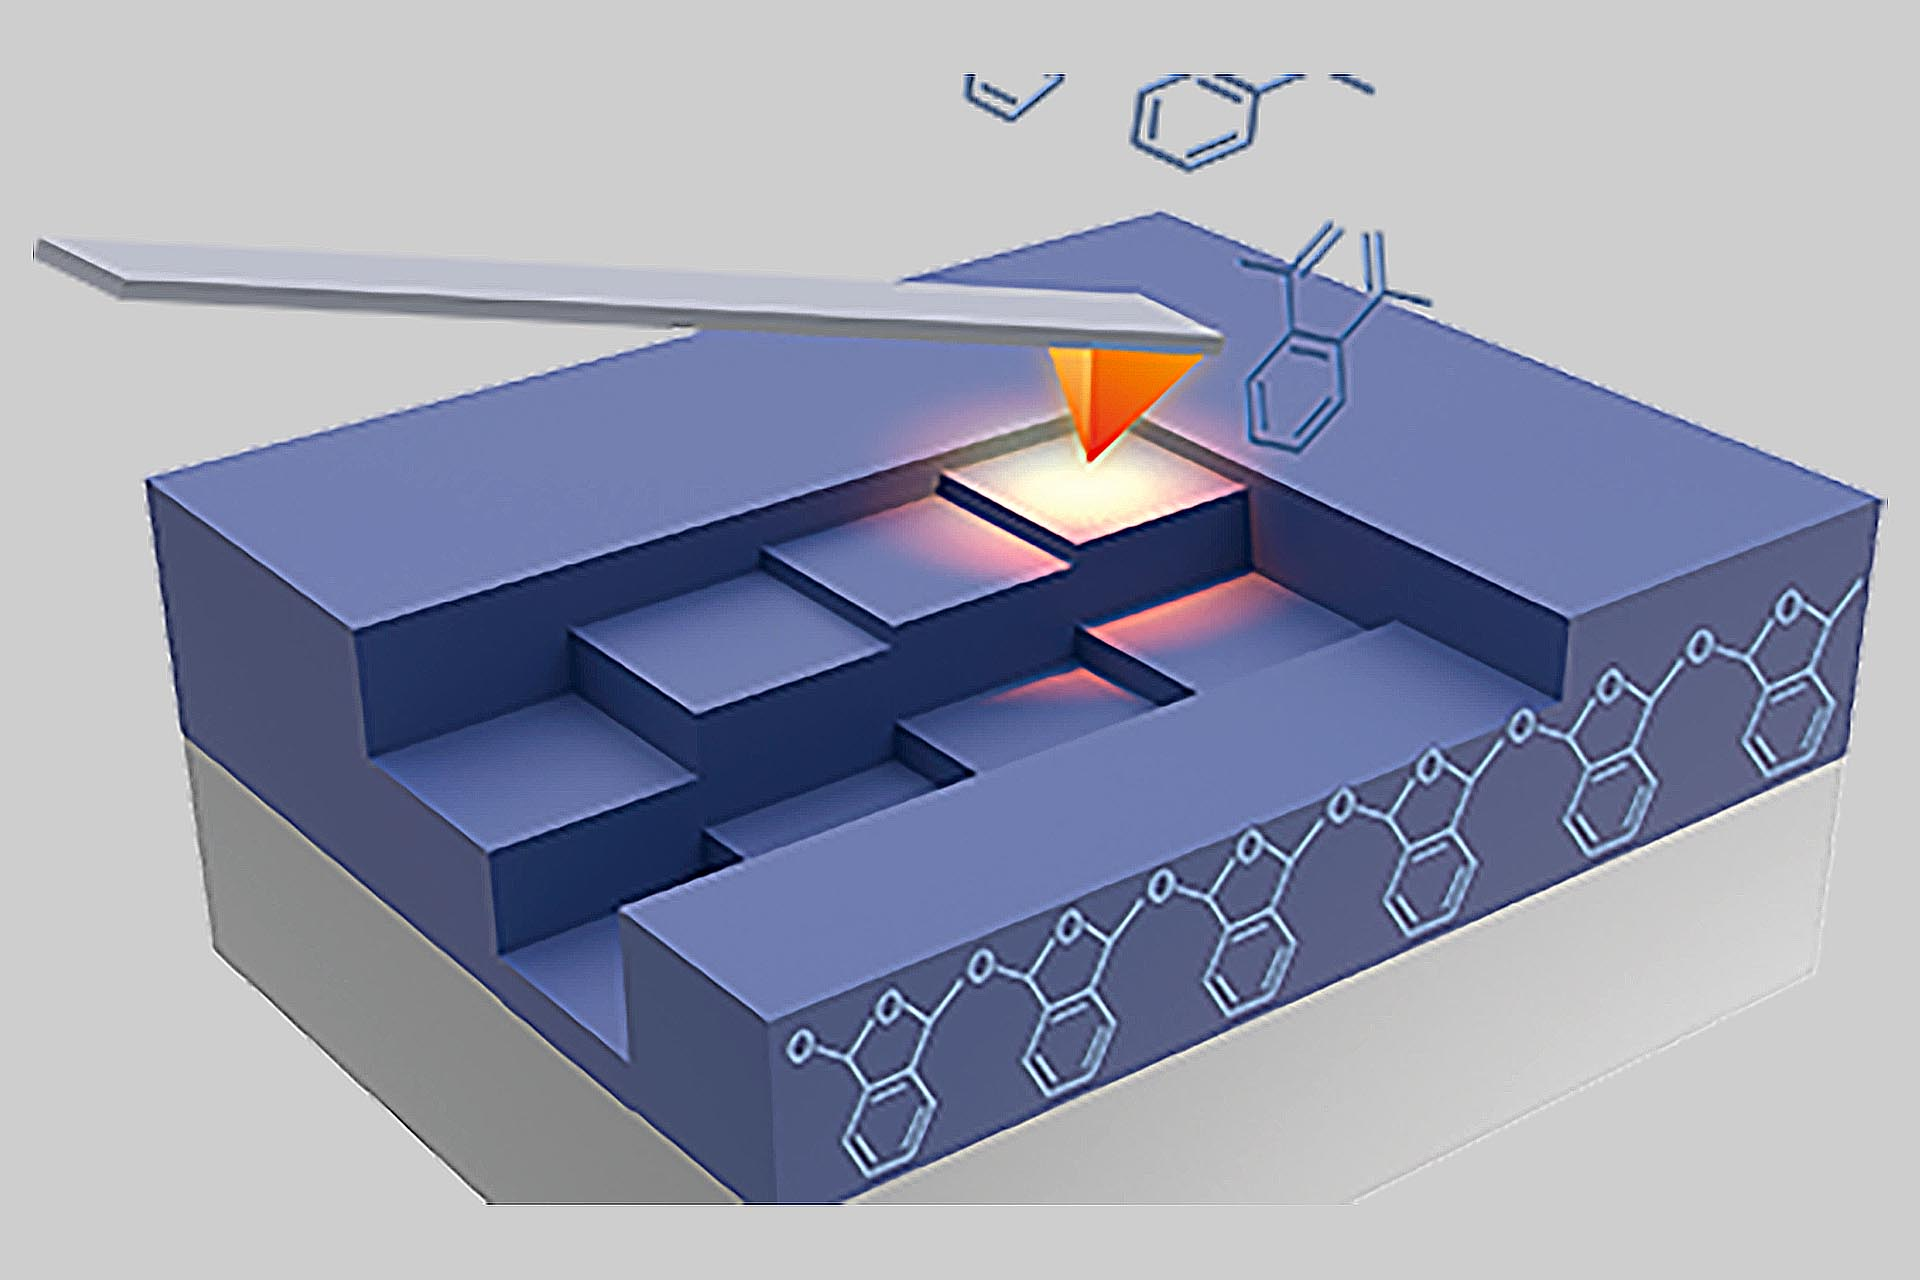 An ultra-sharp heatable probe tip is used for writing and simultaneous inspection of complex nanostructures. The heated tip can create complex, high-resolution nanostructures by local sublimation of resists. Standard pattern transfer methods like lift-off or etching can be applied.